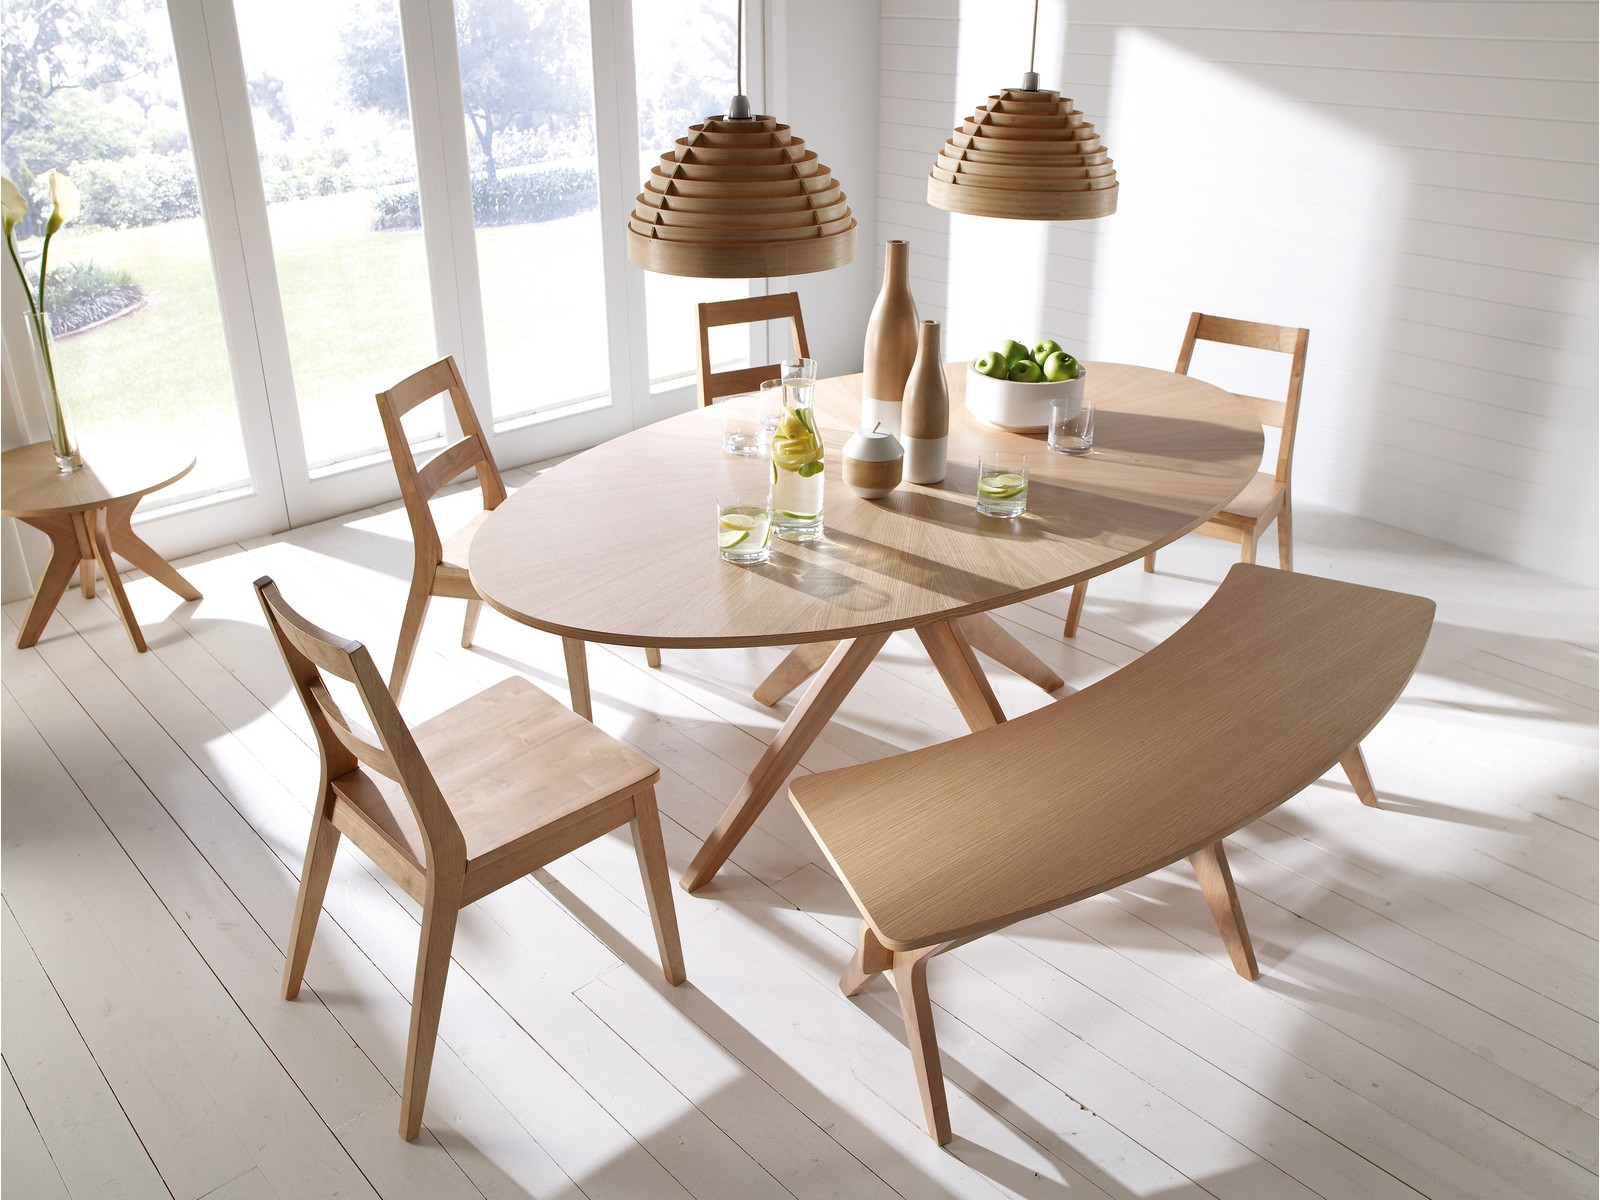 Malmo Scandinavian Style Dining Furniture Tables Chairs  : MALMO20ROOMSET202 from www.ebay.co.uk size 1600 x 1200 jpeg 355kB